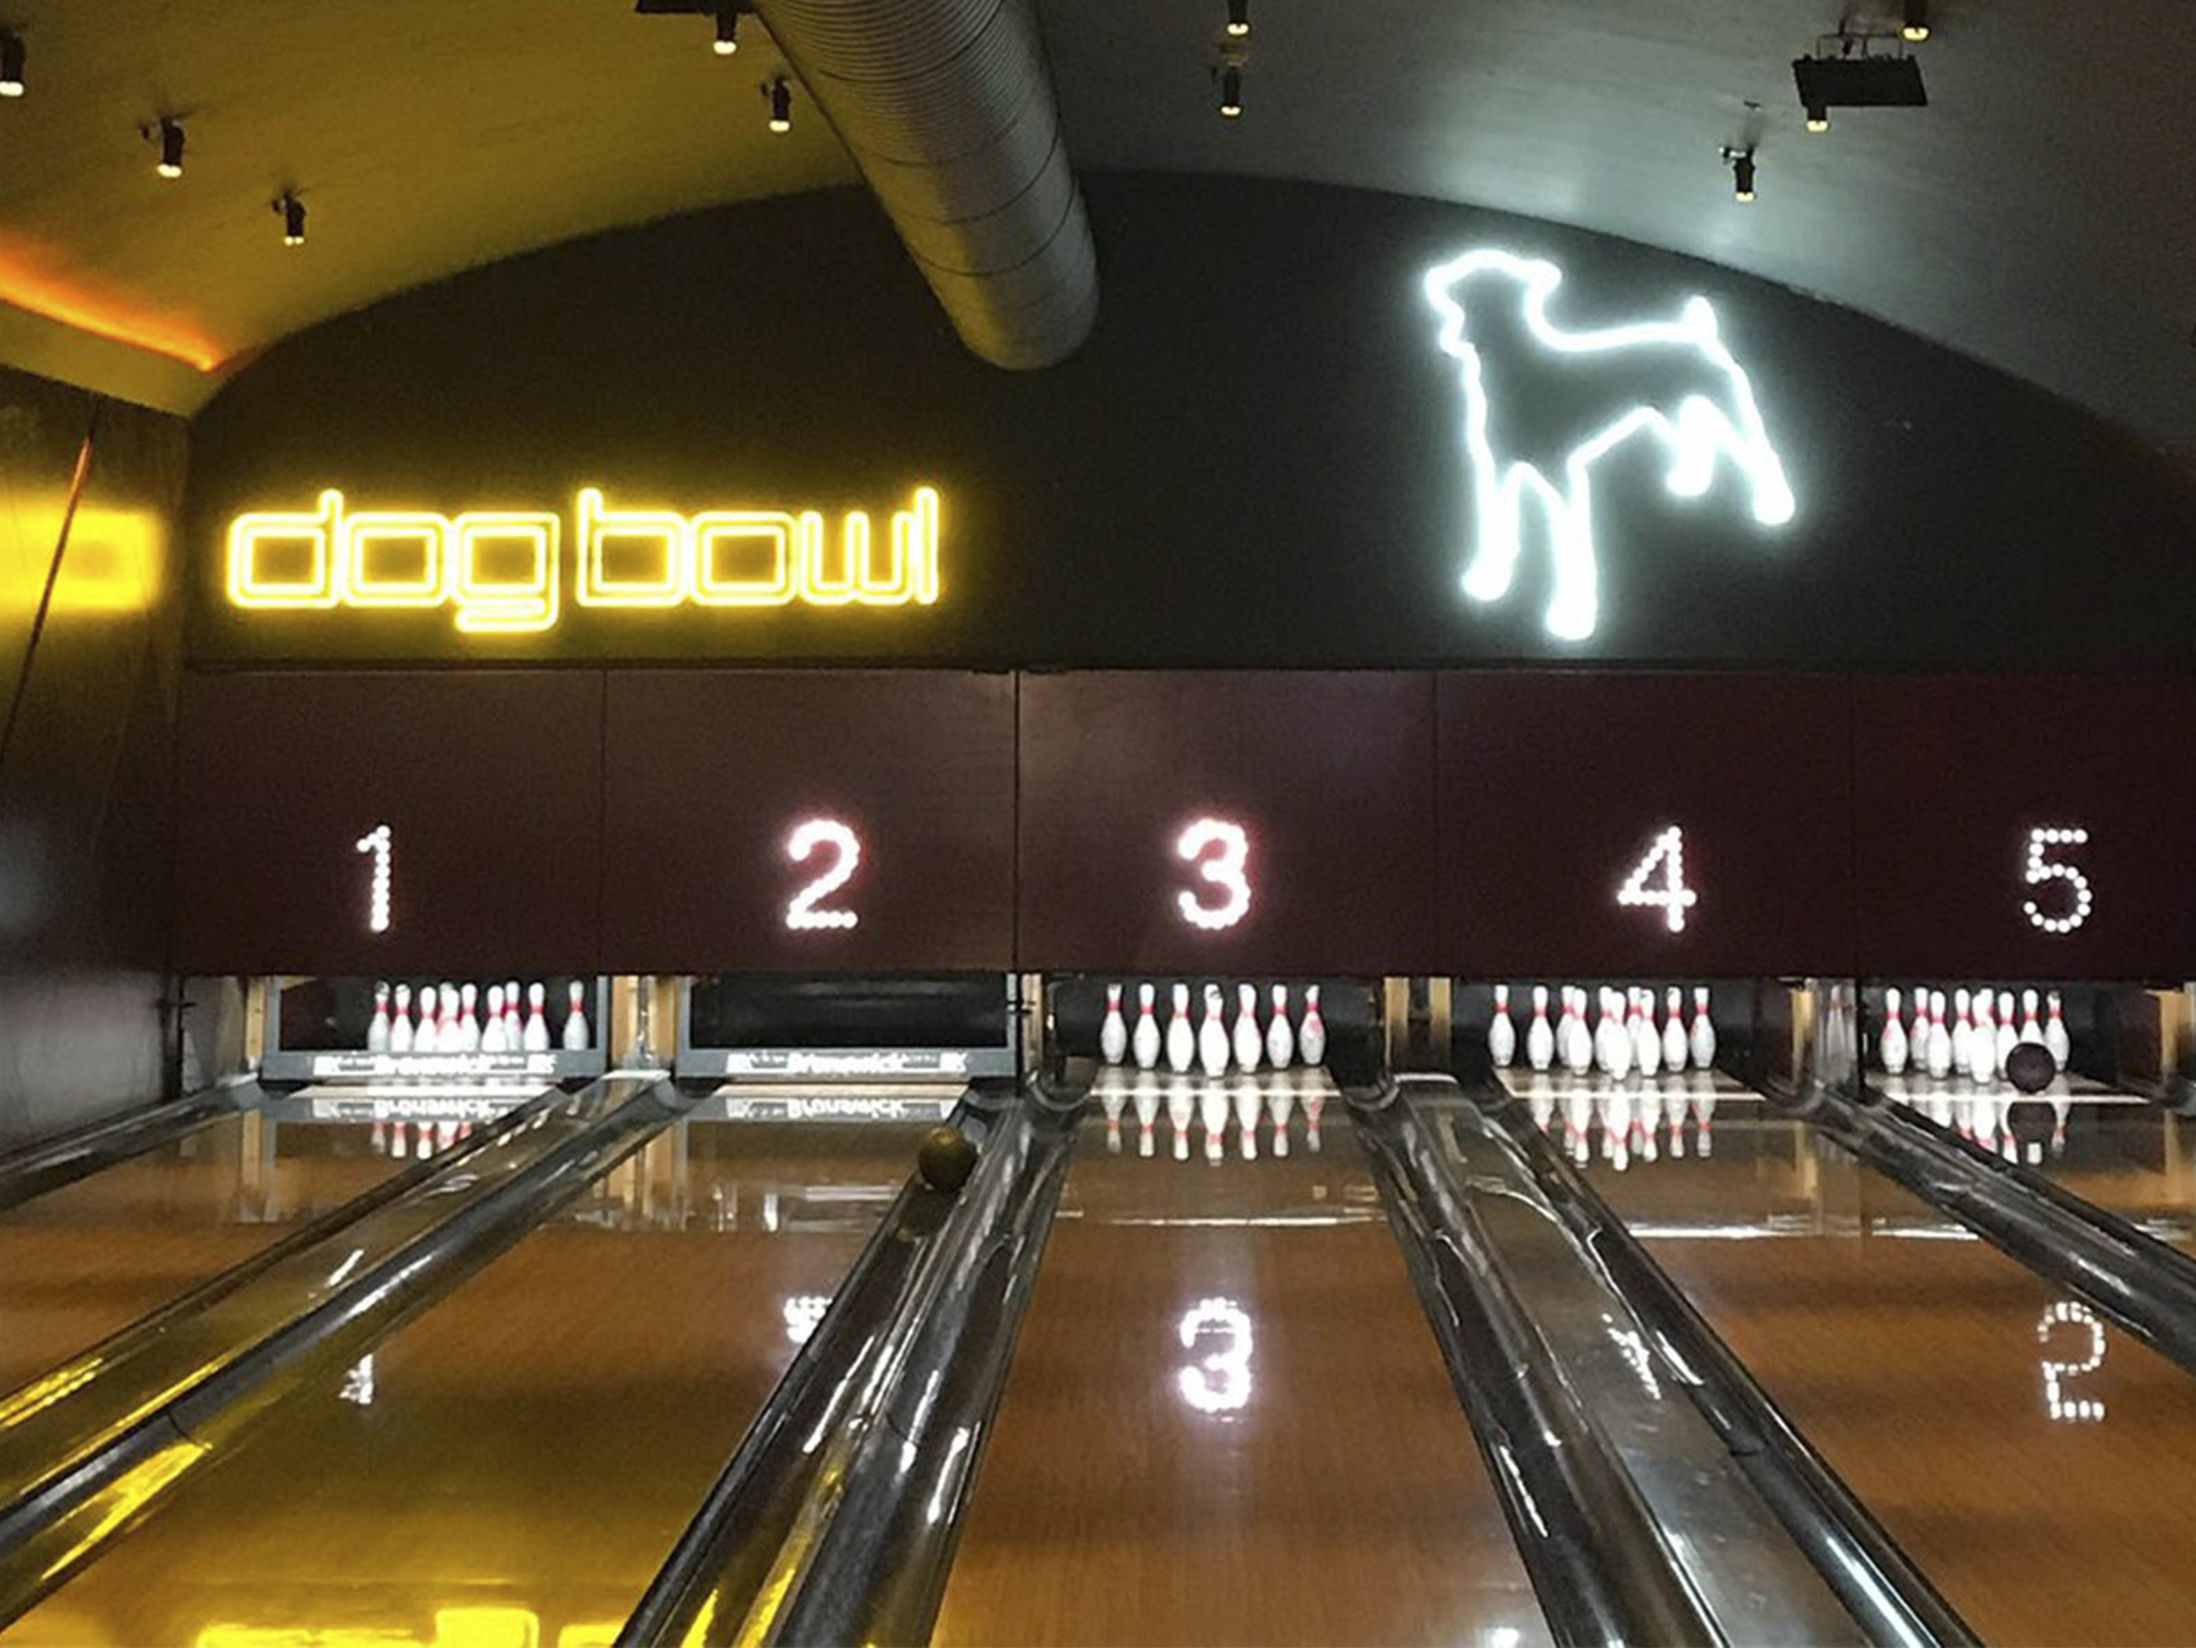 Best Bars in Manchester - Dog Bowl